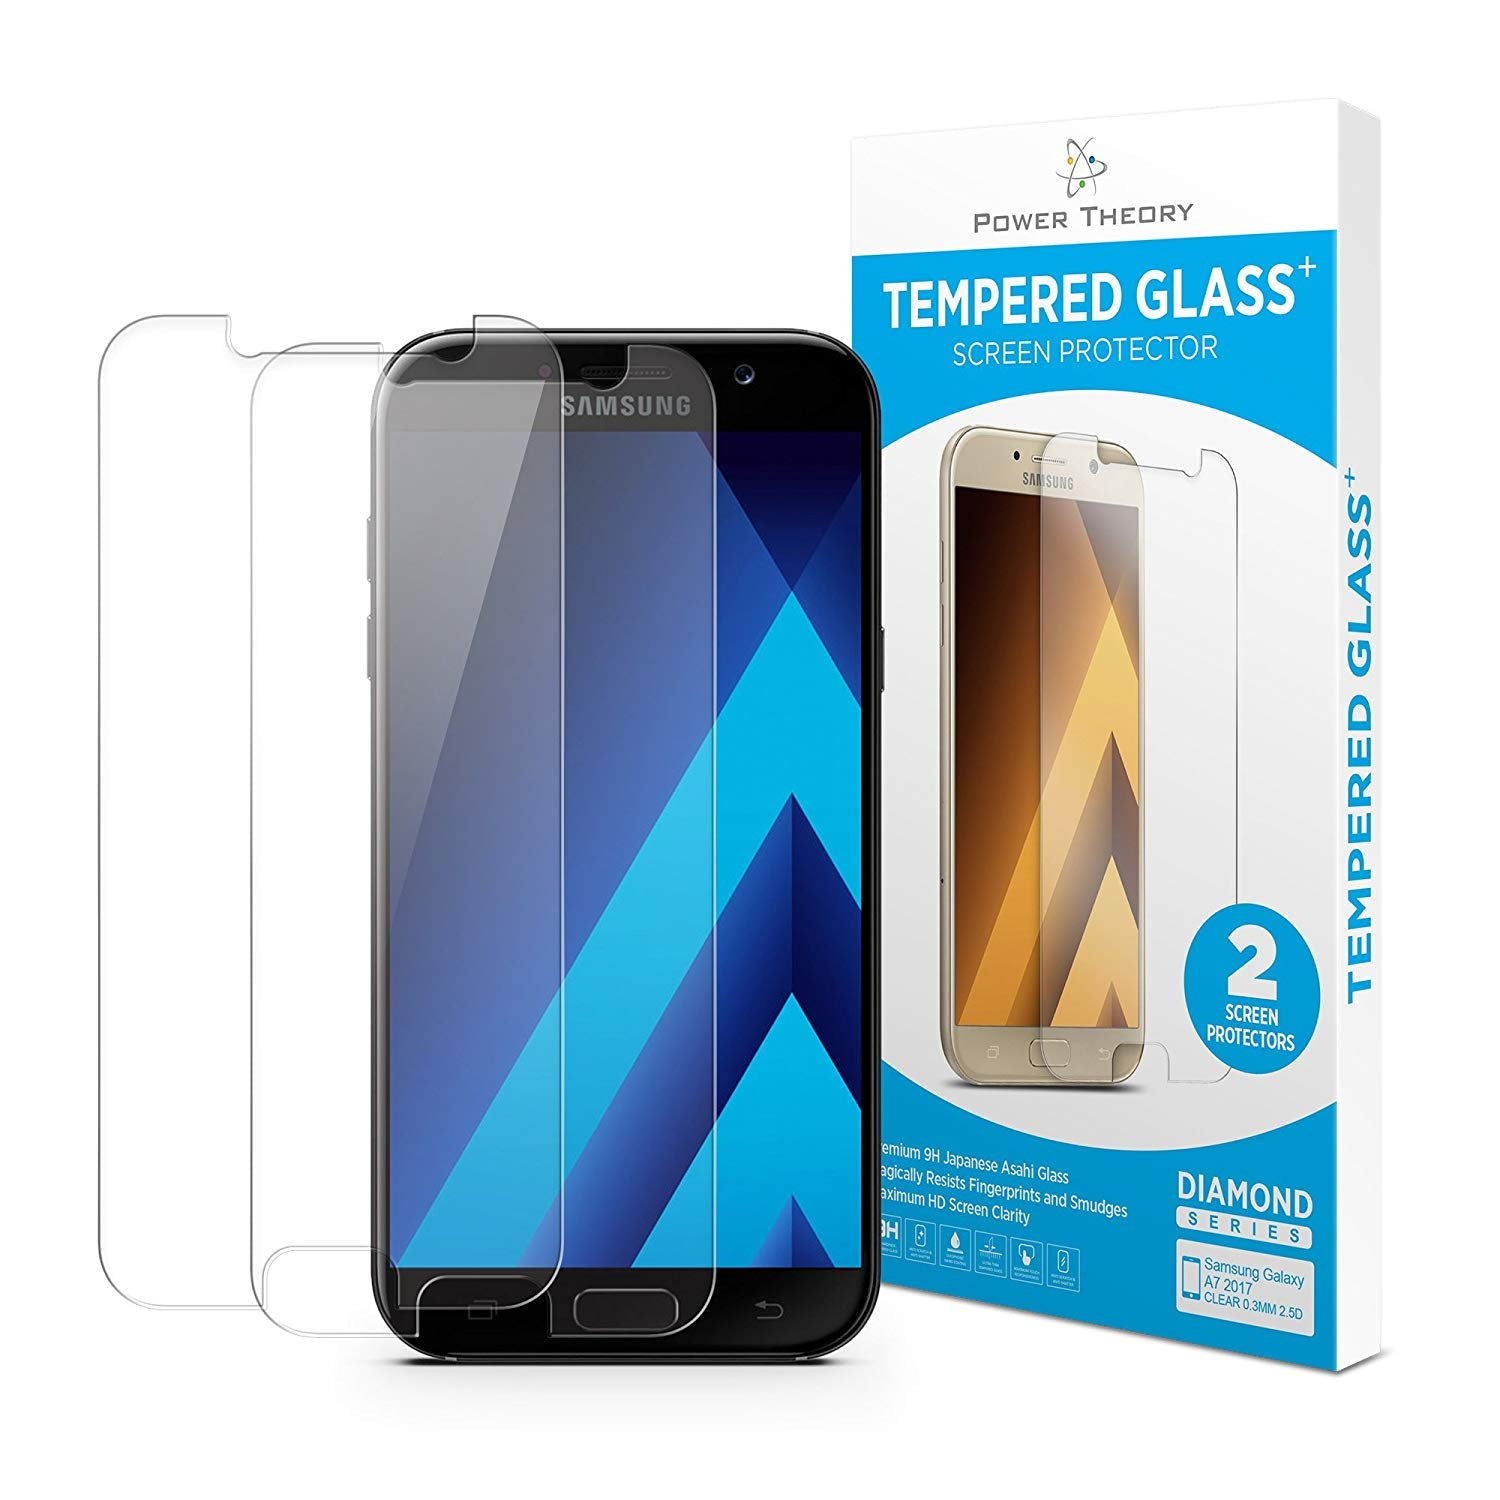 Samsung Galaxy S6 Tempered Glass (Pack of 2), Protective Glass, Japanese 9H Tempered HD Screen Protector, Glass Display Protection Film, Hard Glass Screen Protector, Tempered Glass Film, Mobile Phone Glass Screen Protector, Tempered Film